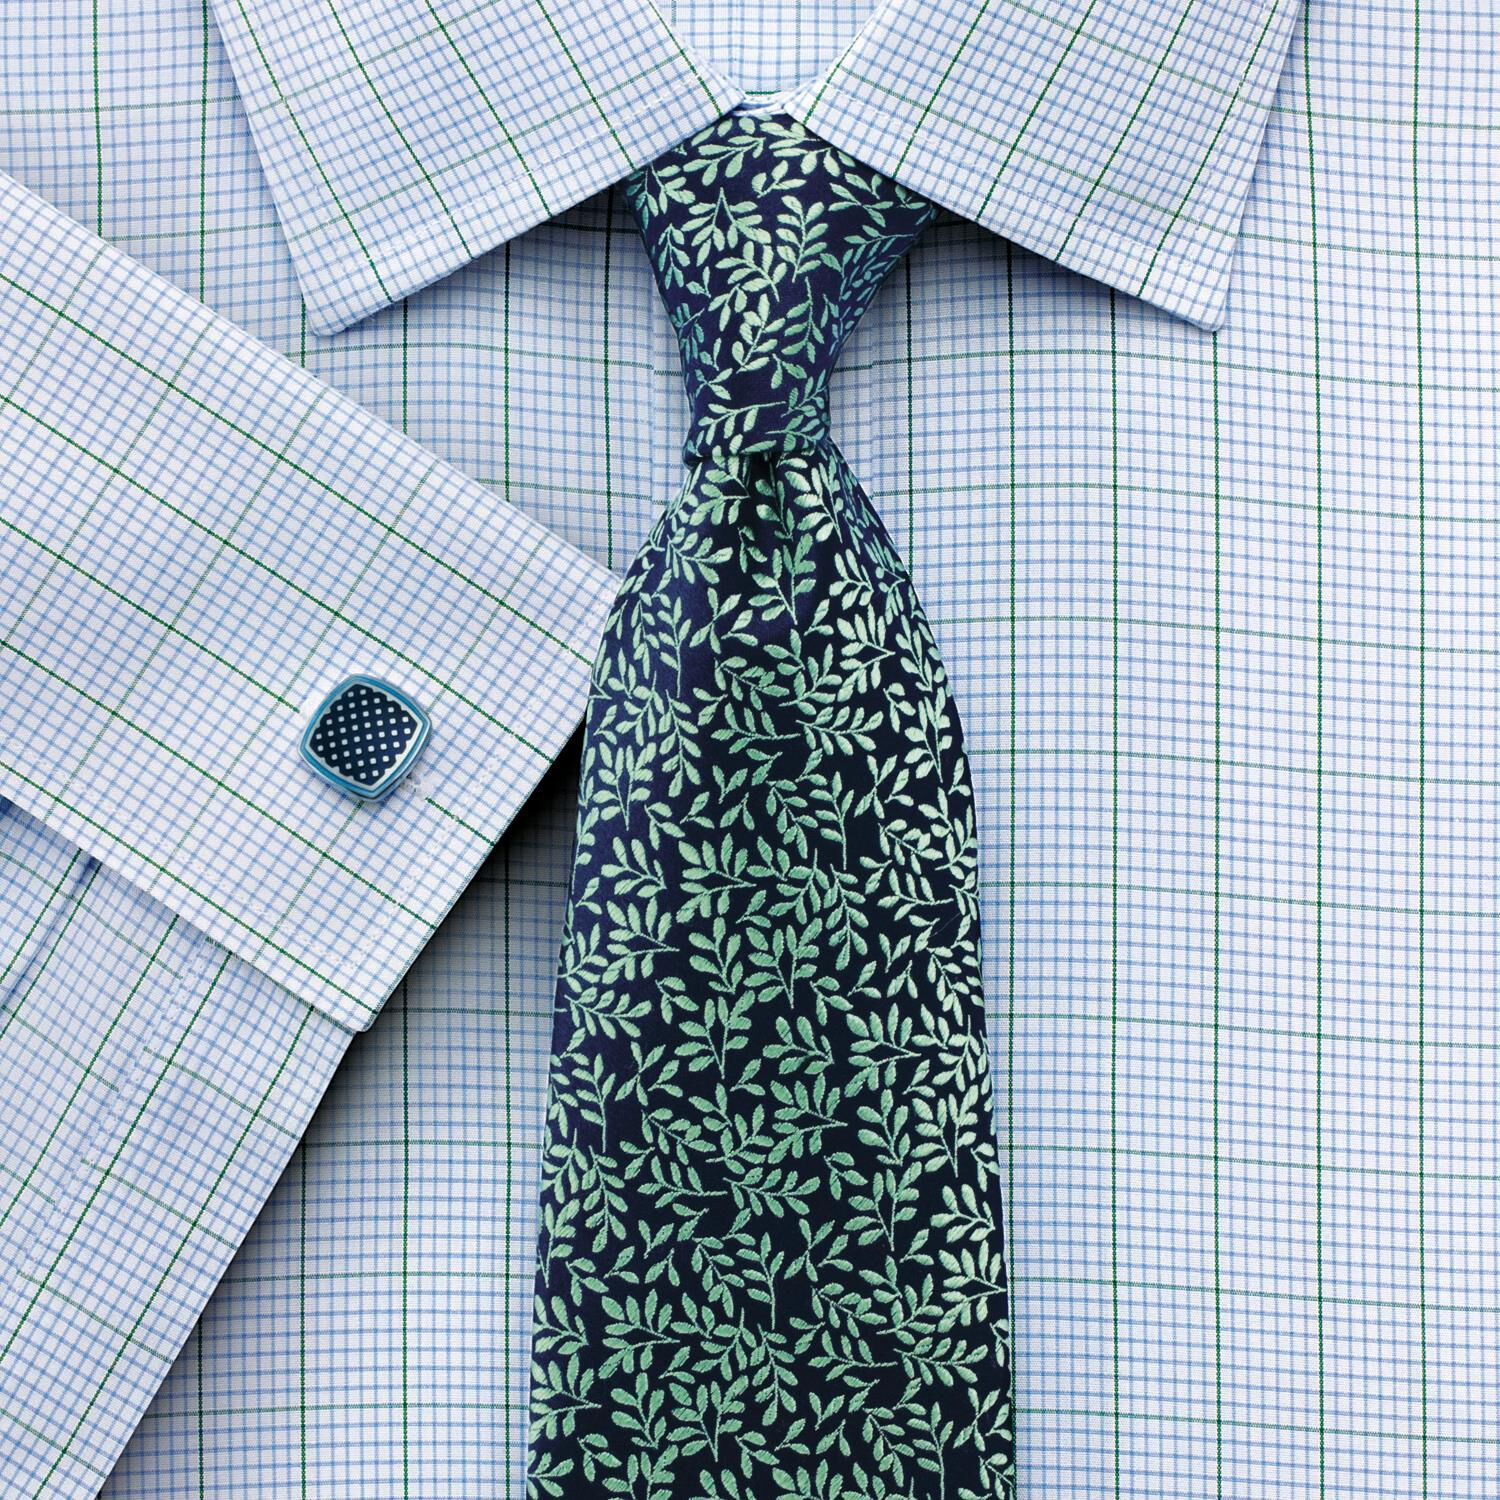 Classic Fit Non-Iron Check Green Cotton Formal Shirt Double Cuff Size 17/37 by Charles Tyrwhitt